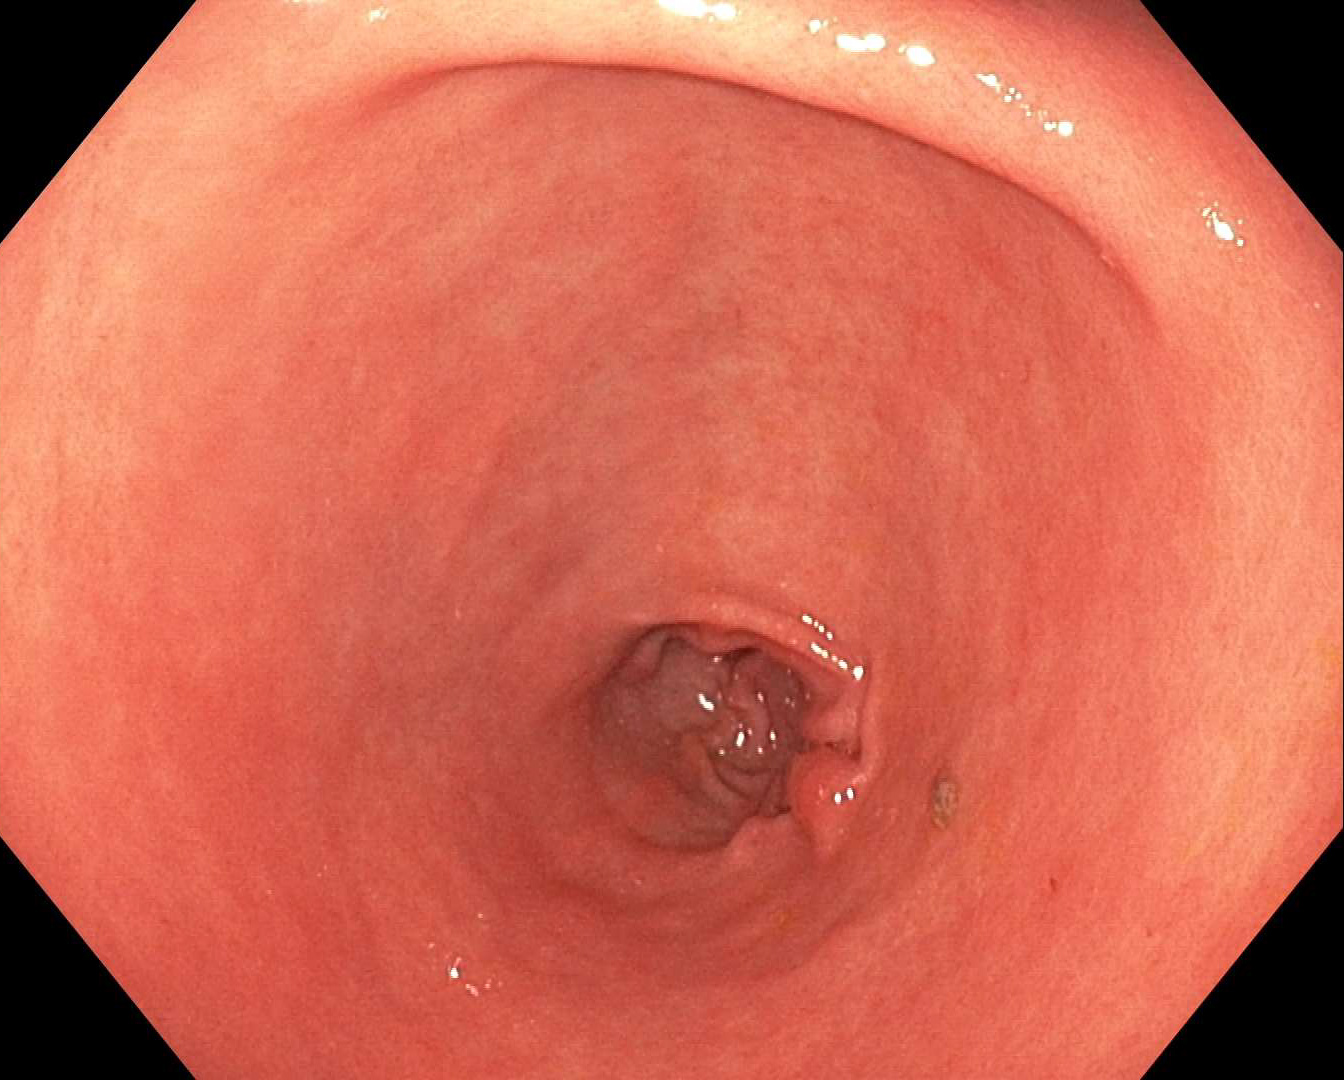 Endoscopic view of Pre-Pyloric Stomach